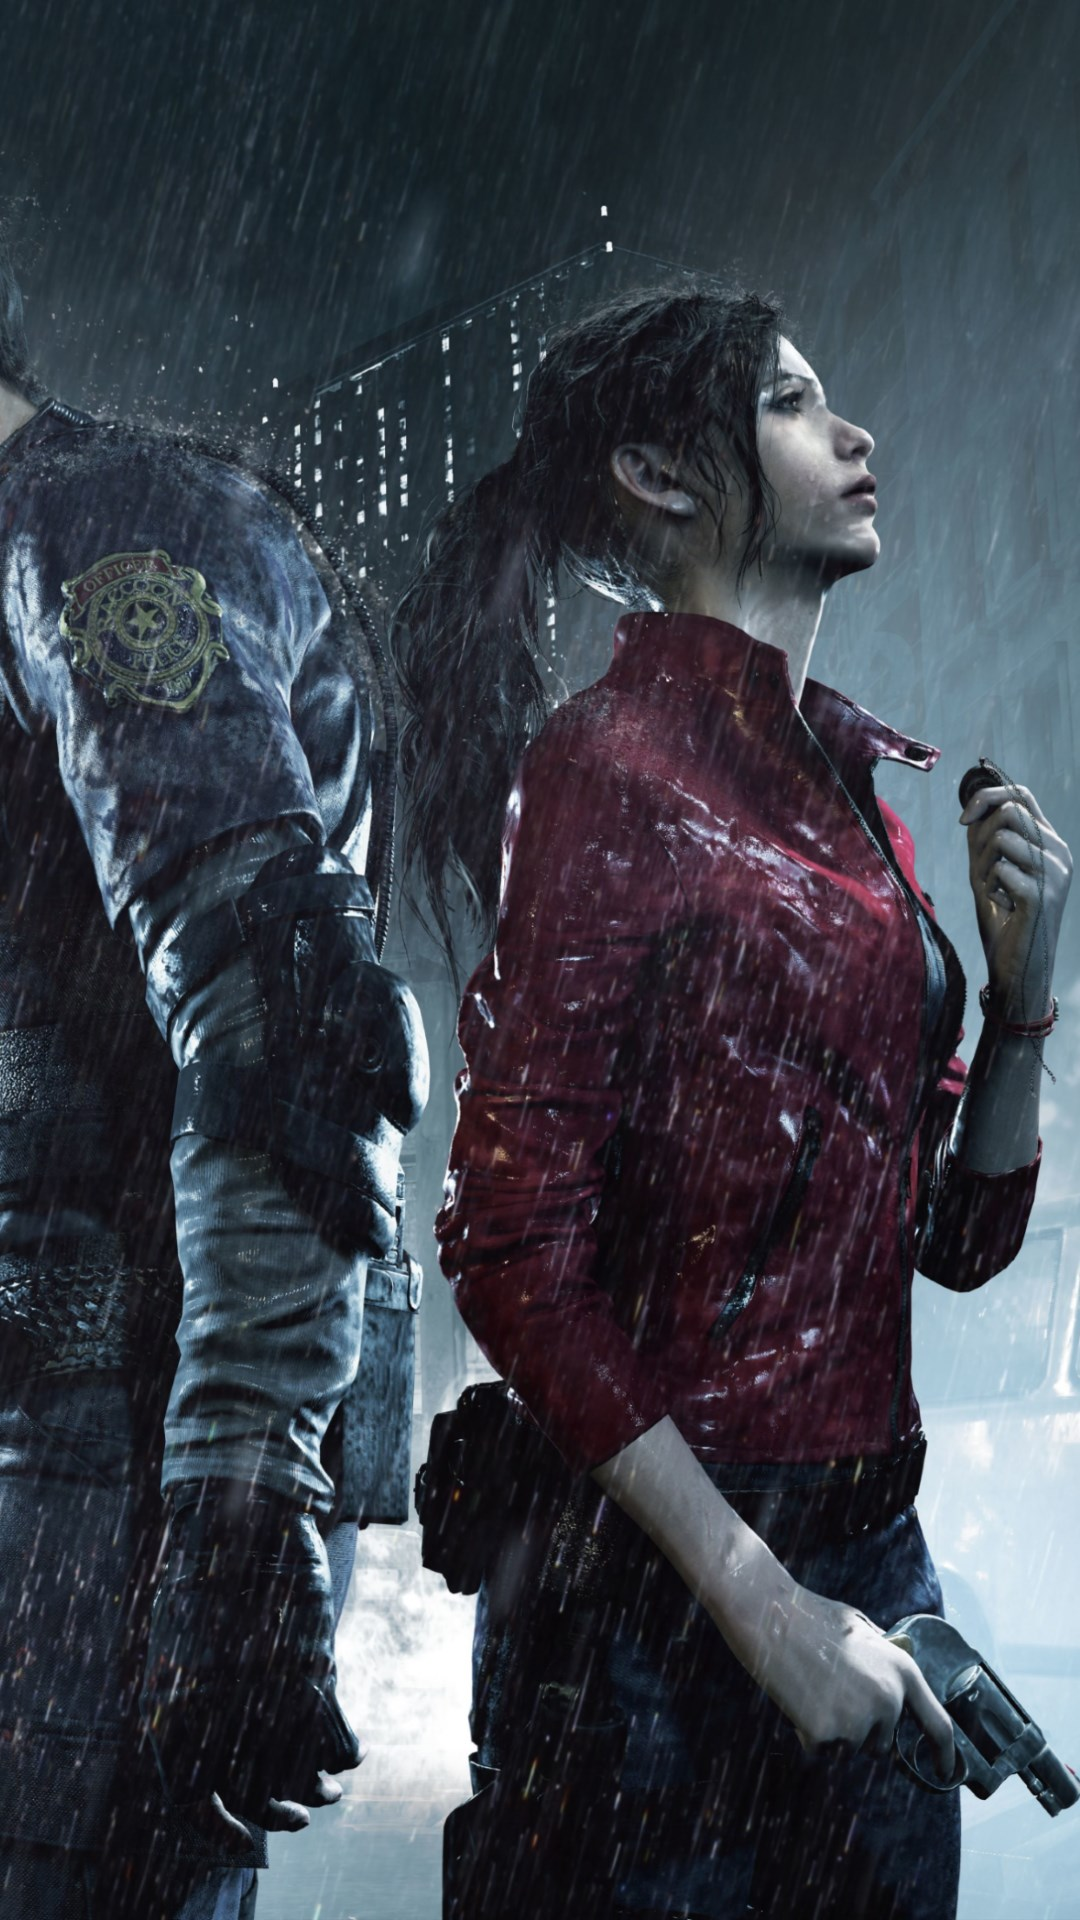 Download Wallpaper Resident Evil 2 1080x1920